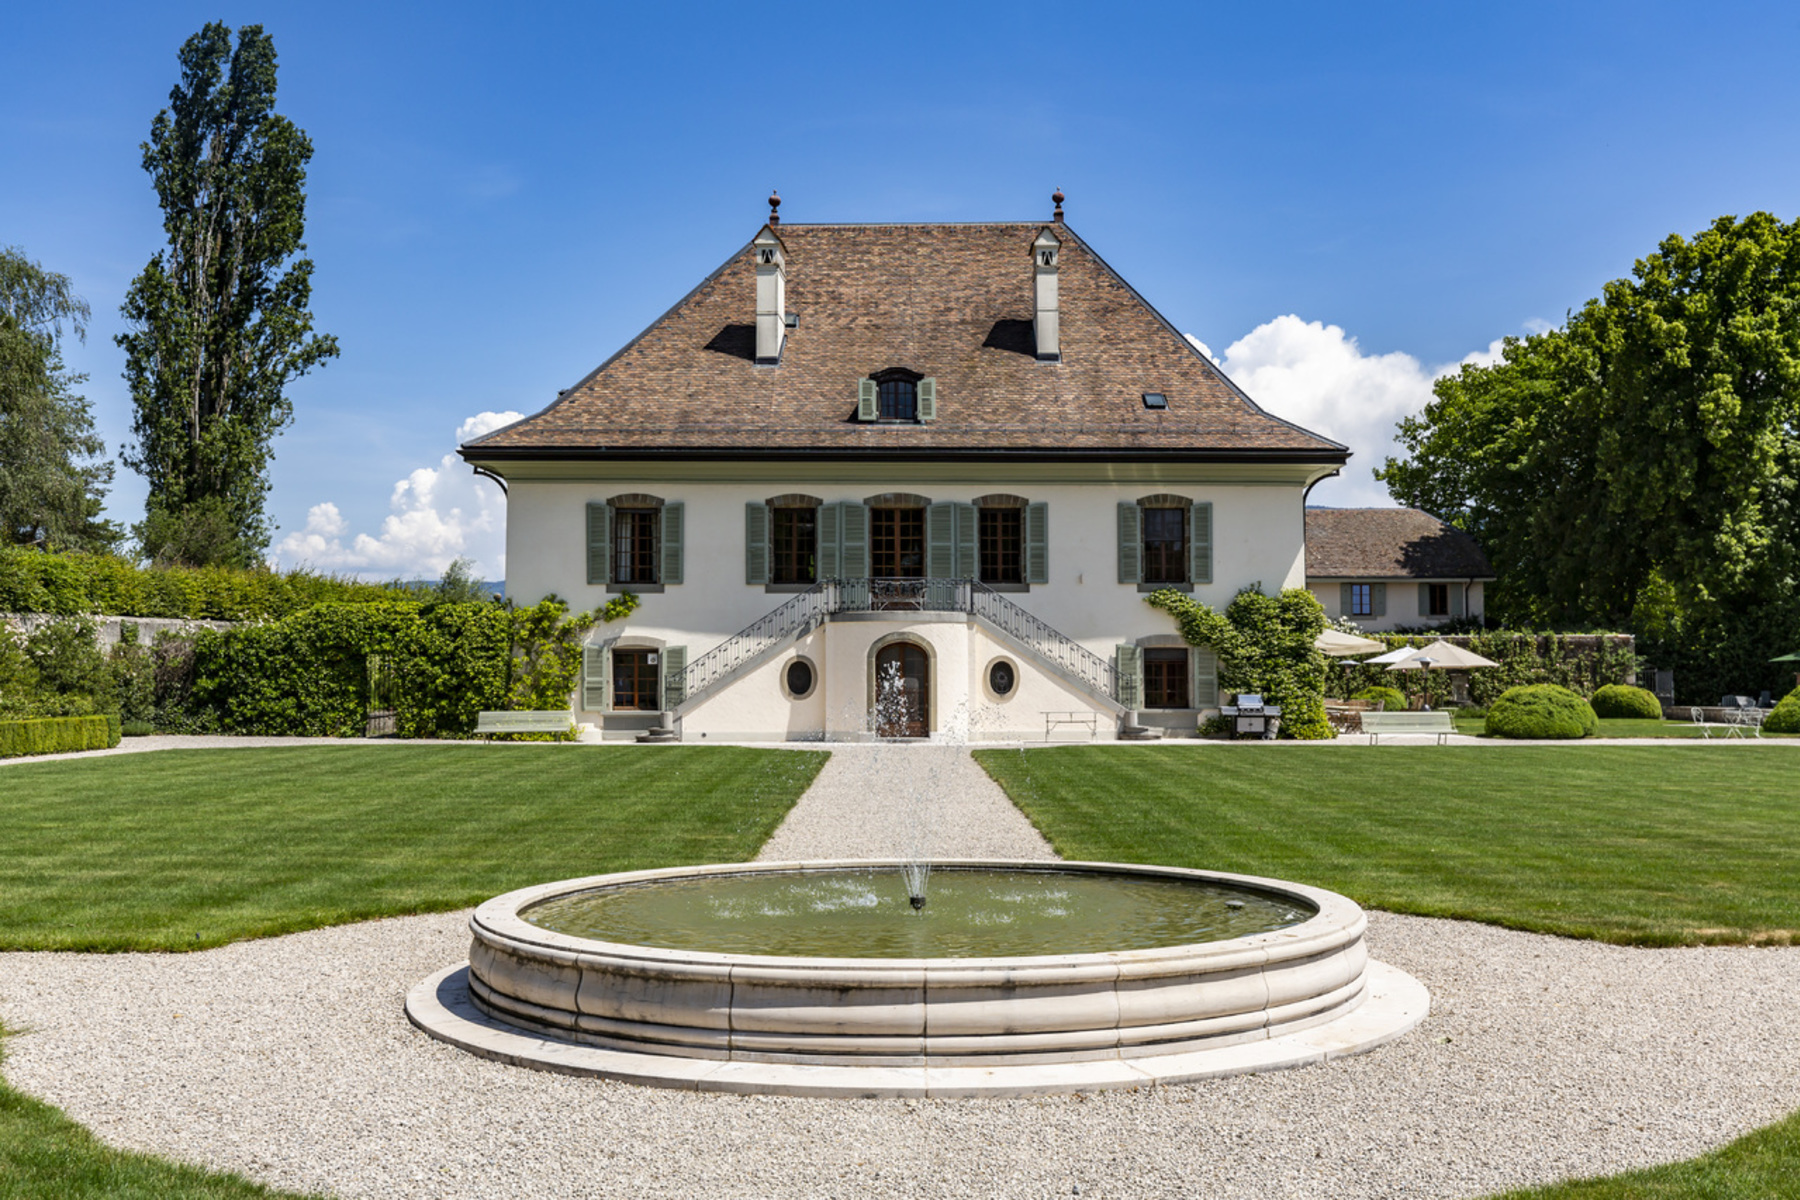 Property voor Verkoop op Royal Estate Merlinge Castle Gy Other Geneve, Geneve 1252 Zwitserland